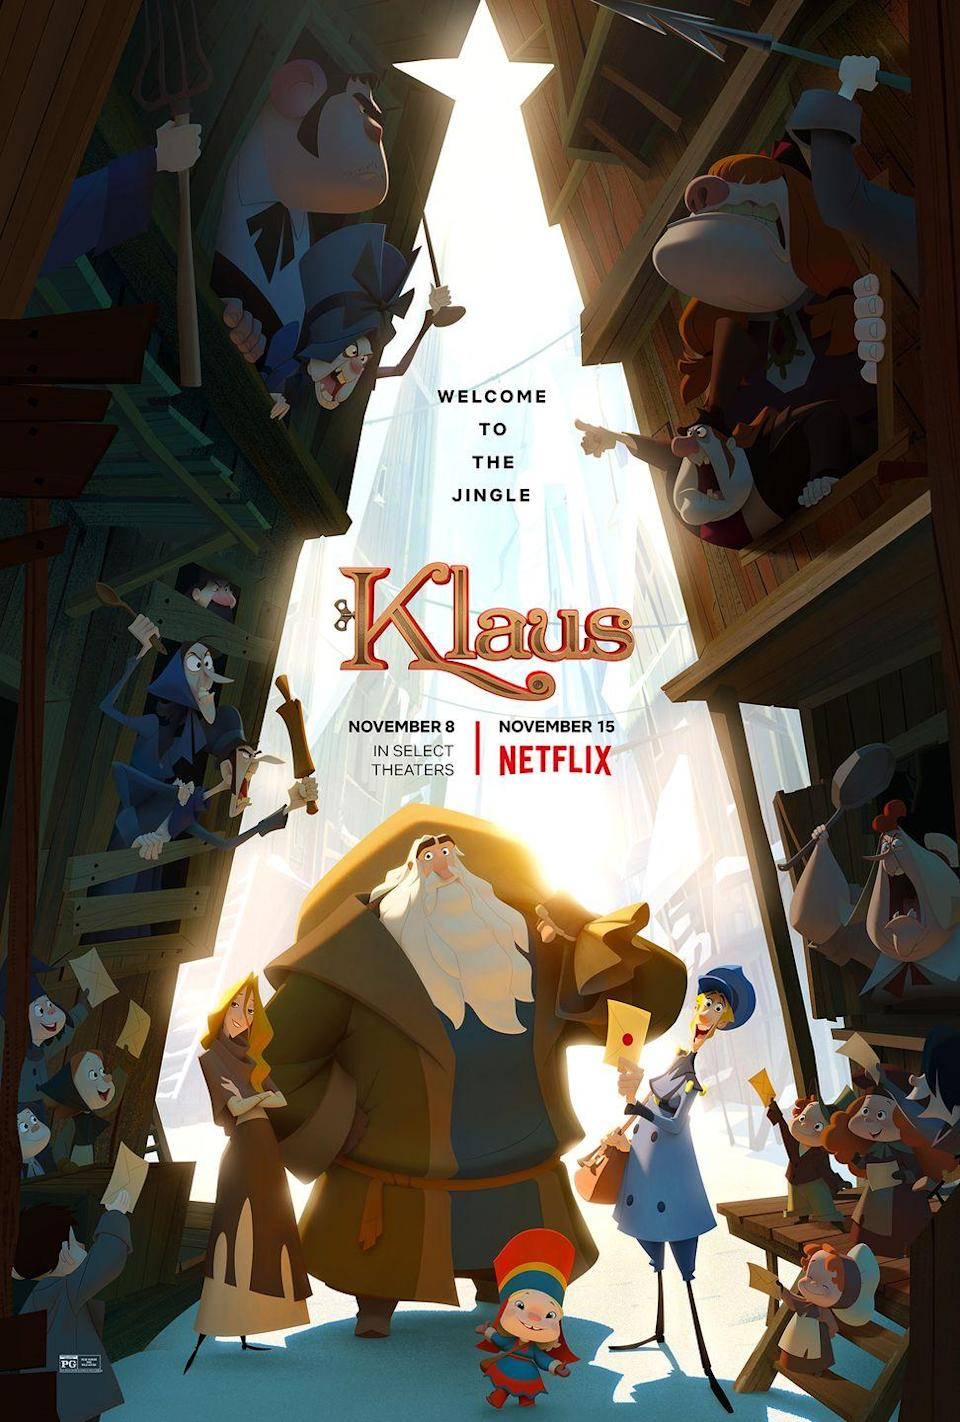 """<p>This animated film tells the story of a desperate young postman whose unlikely friendship with a kindly teacher and a reclusive toymaker leads to the invention of Santa Claus. </p><p><a class=""""link rapid-noclick-resp"""" href=""""https://www.netflix.com/title/80183187"""" rel=""""nofollow noopener"""" target=""""_blank"""" data-ylk=""""slk:STREAM NOW"""">STREAM NOW</a></p>"""